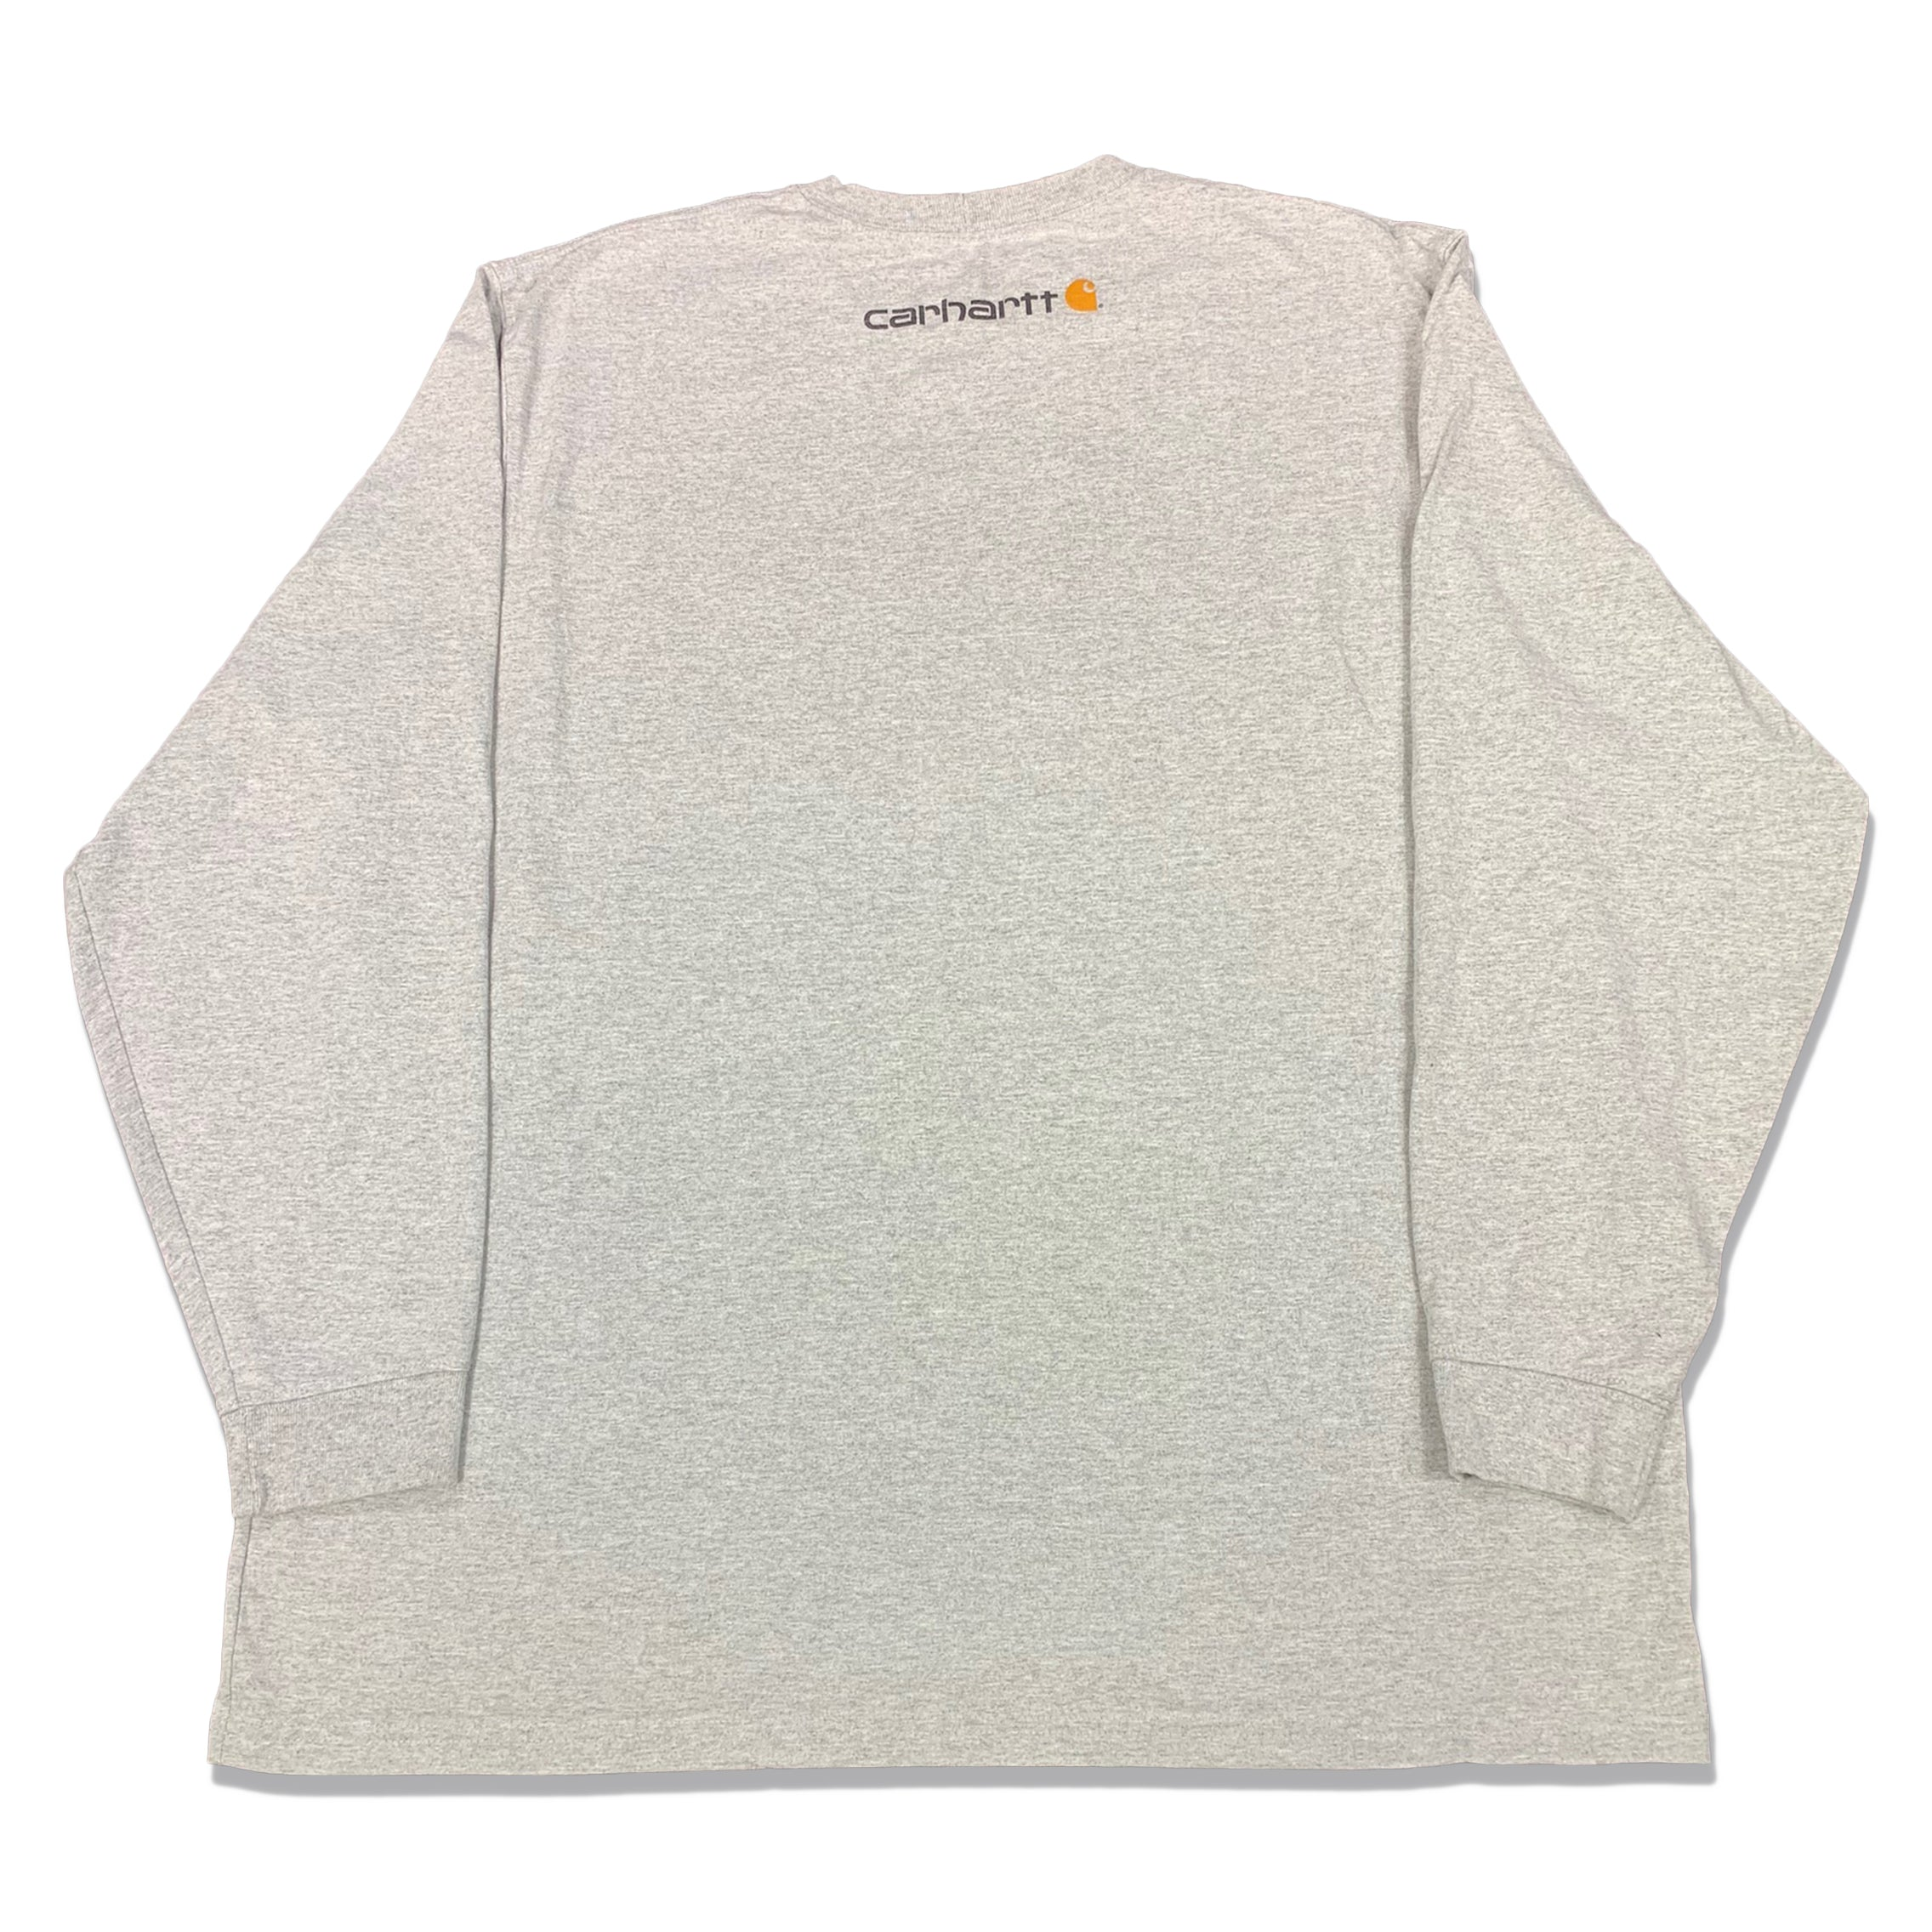 Y2K Carhartt Spell Out Logo Long Sleeve T-Shirt